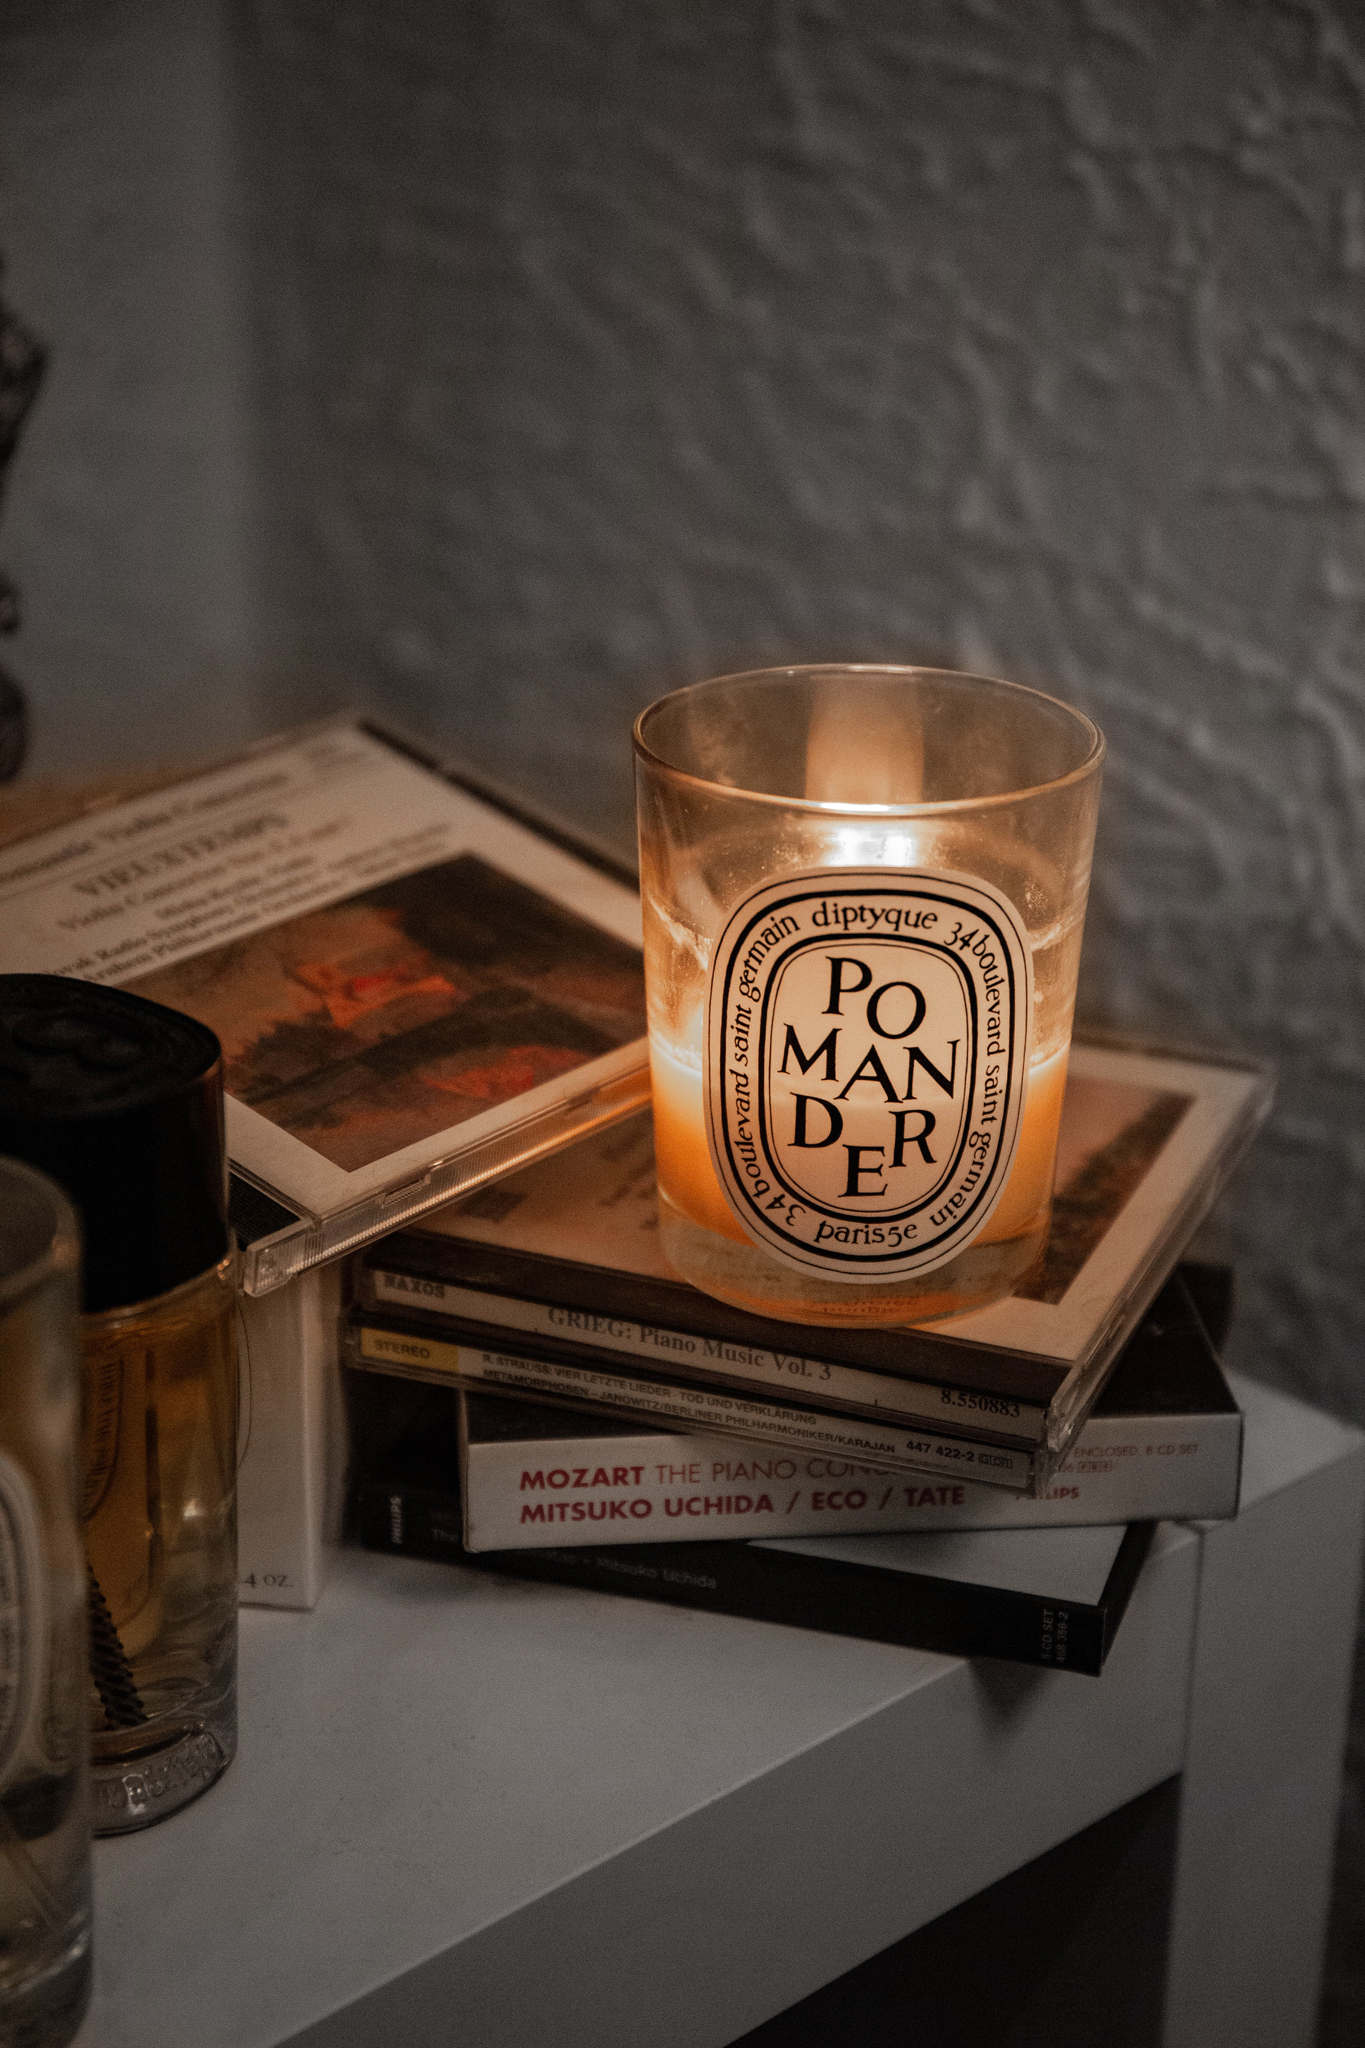 Diptyque Pomander Candle